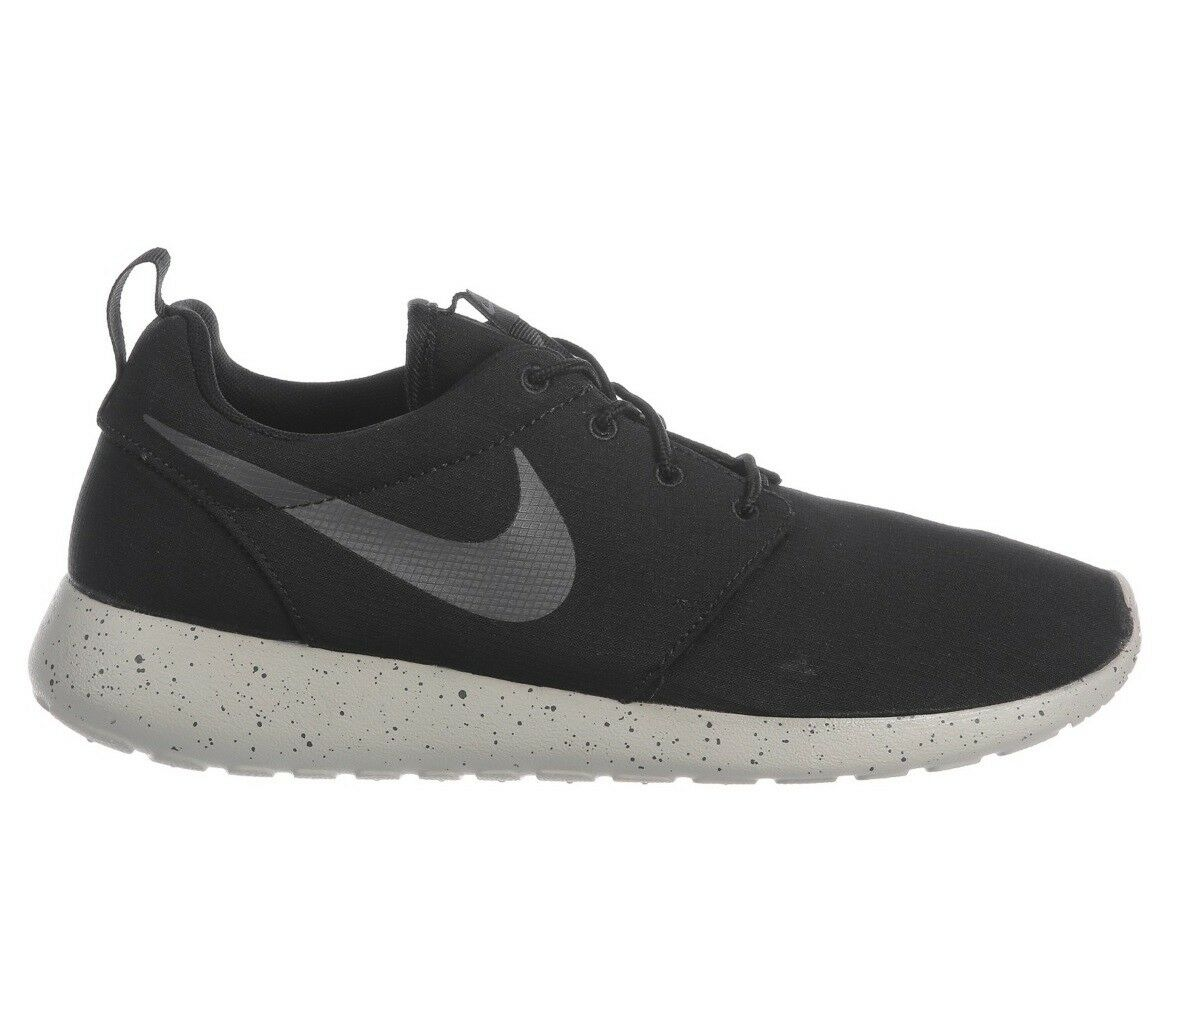 Nike Roshe One SE Mens 844687-009 Black Grey Speckle Running Shoes Size 12